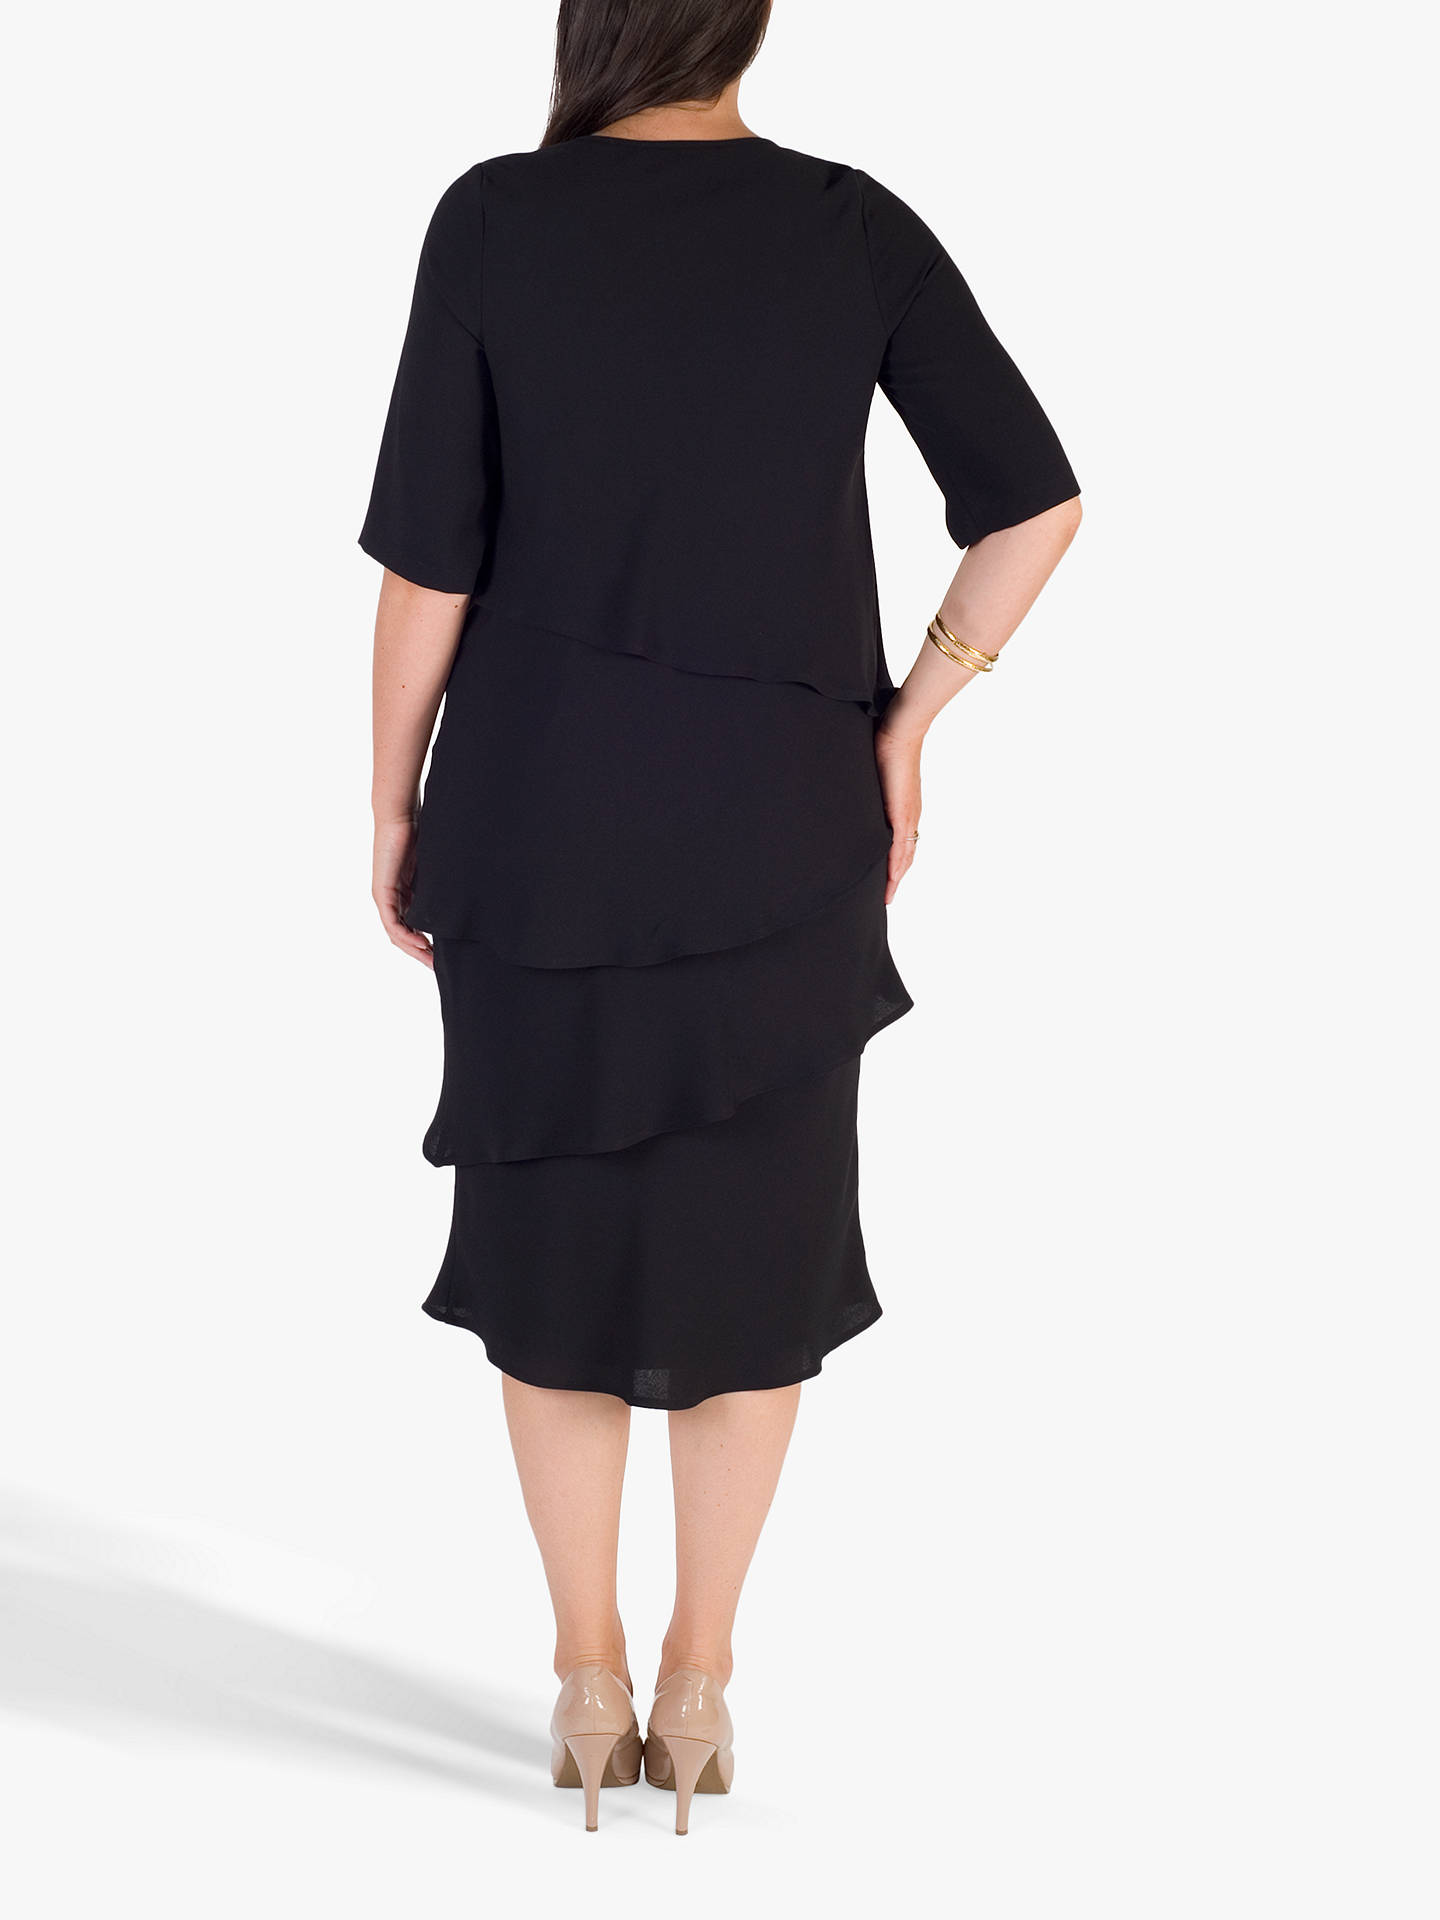 BuyChesca Layered Dress, Black, 18 Online at johnlewis.com